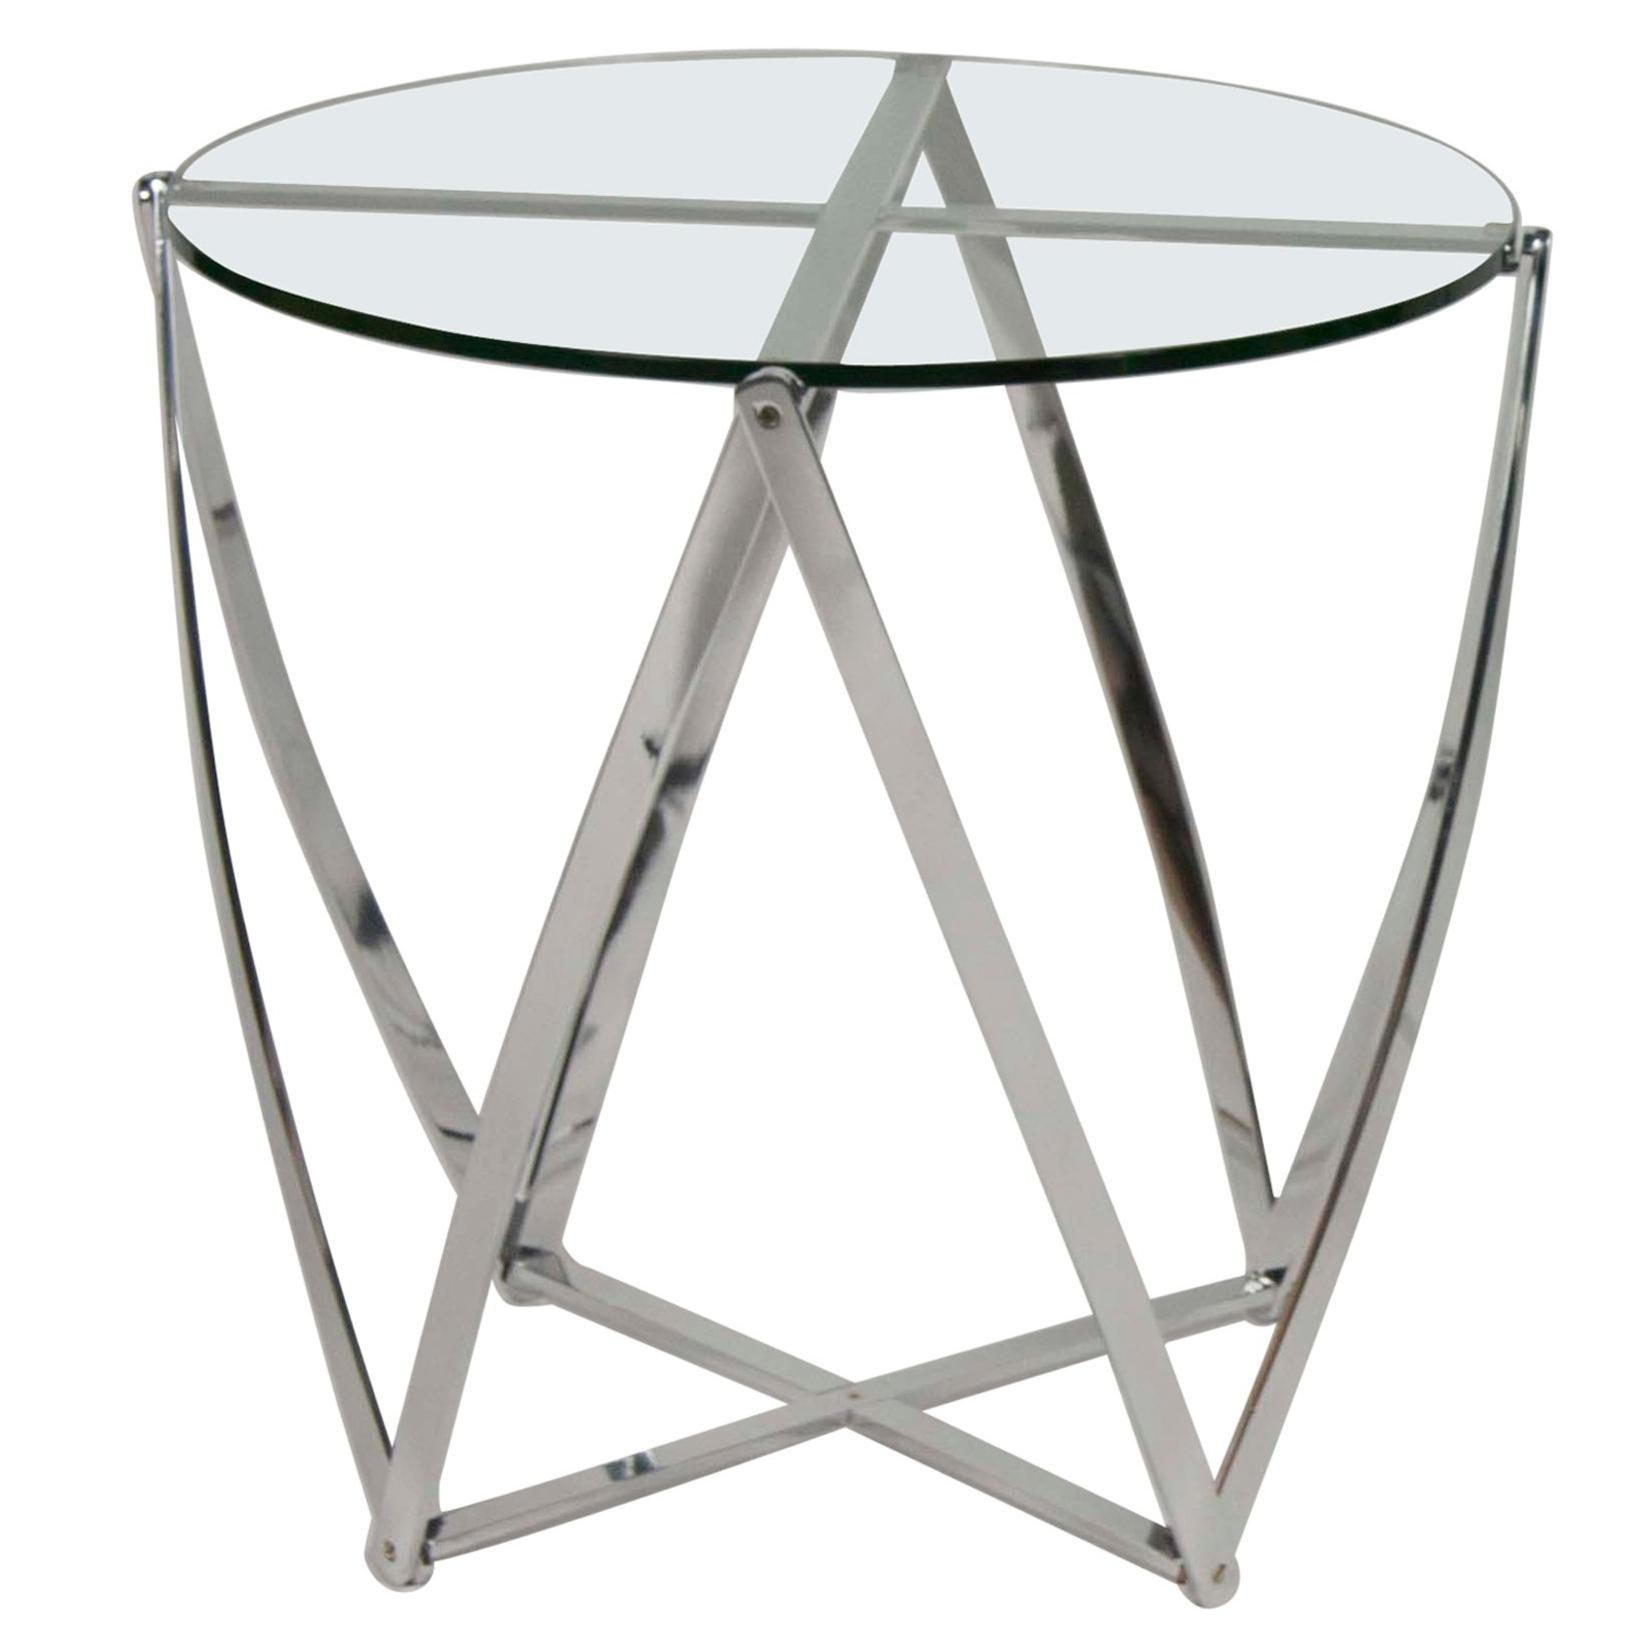 A Pair of John Vesey Aluminum Glass Top Side Tables